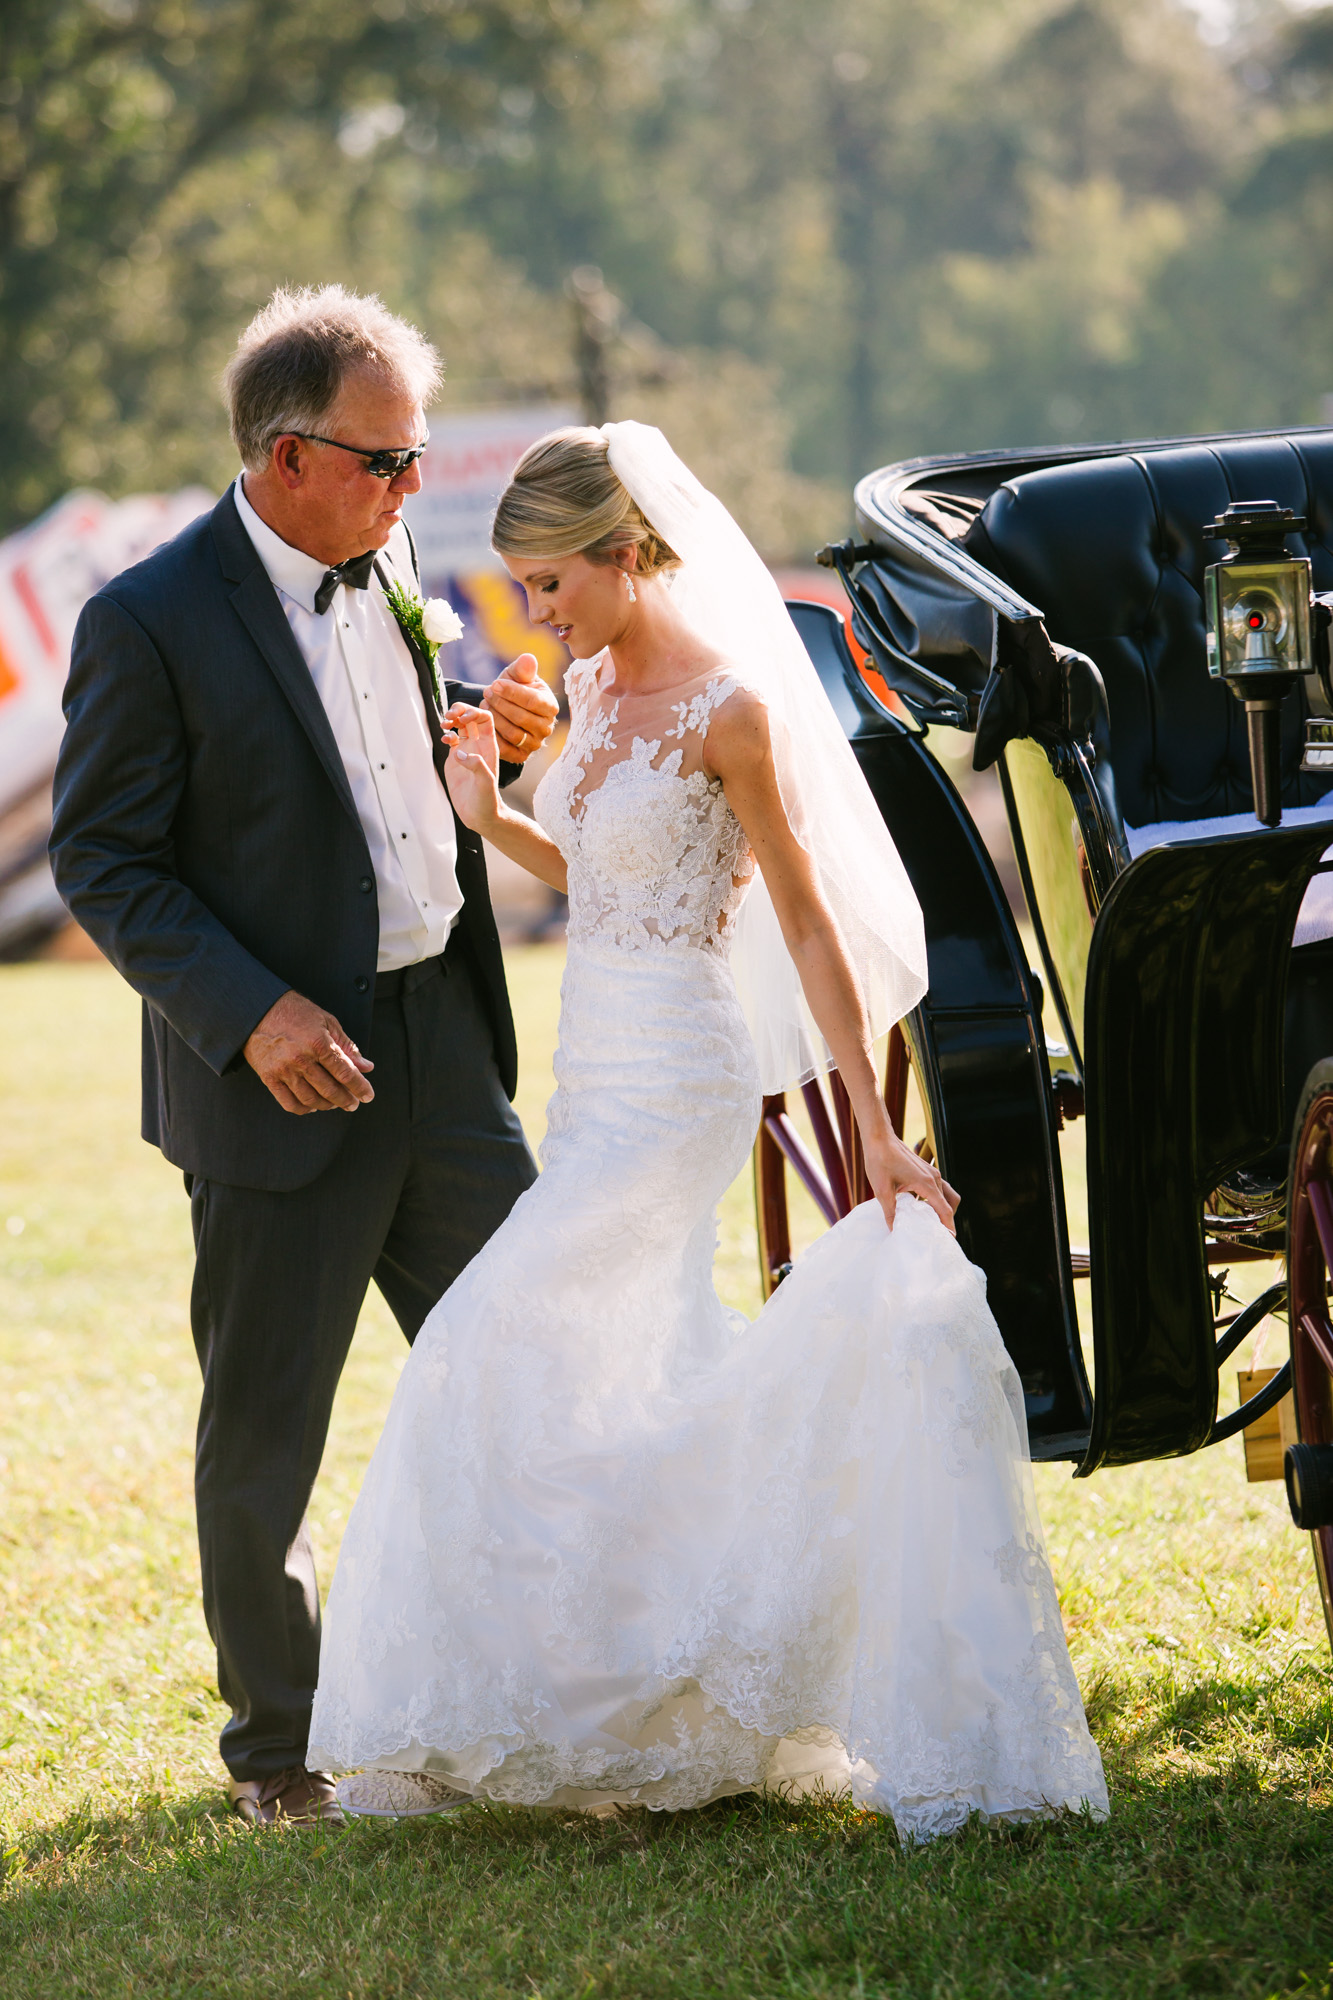 Waynesville, NC Wedding Photography | Bride Lifting Wedding Dress from Carriage